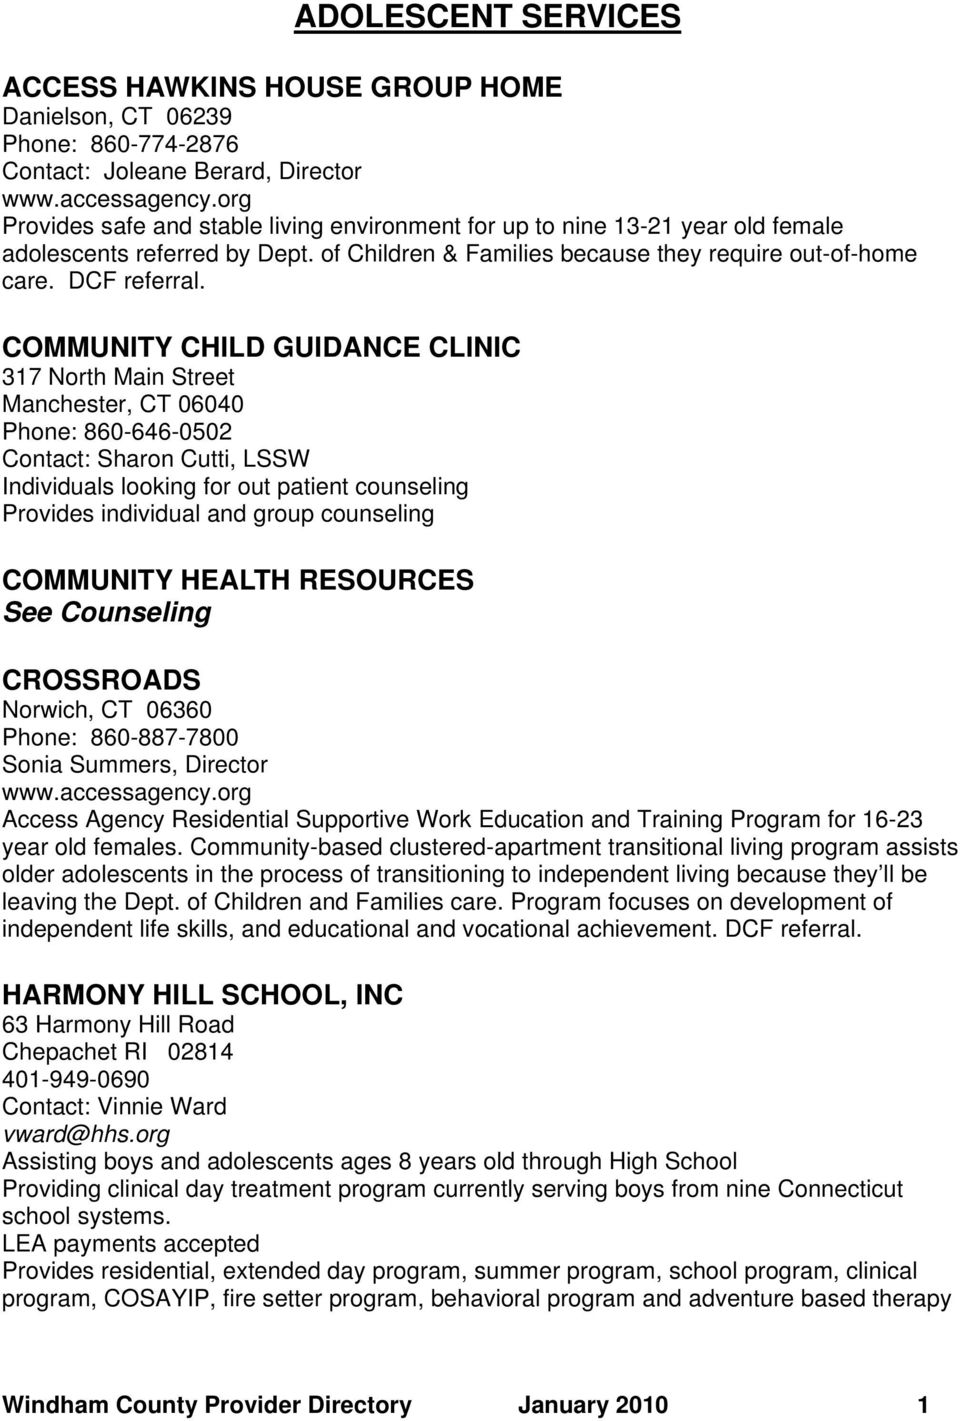 COMMUNITY CHILD GUIDANCE CLINIC 317 North Main Street Manchester, CT 06040 Phone: 860-646-0502 Contact: Sharon Cutti, LSSW Individuals looking for out patient counseling Provides individual and group